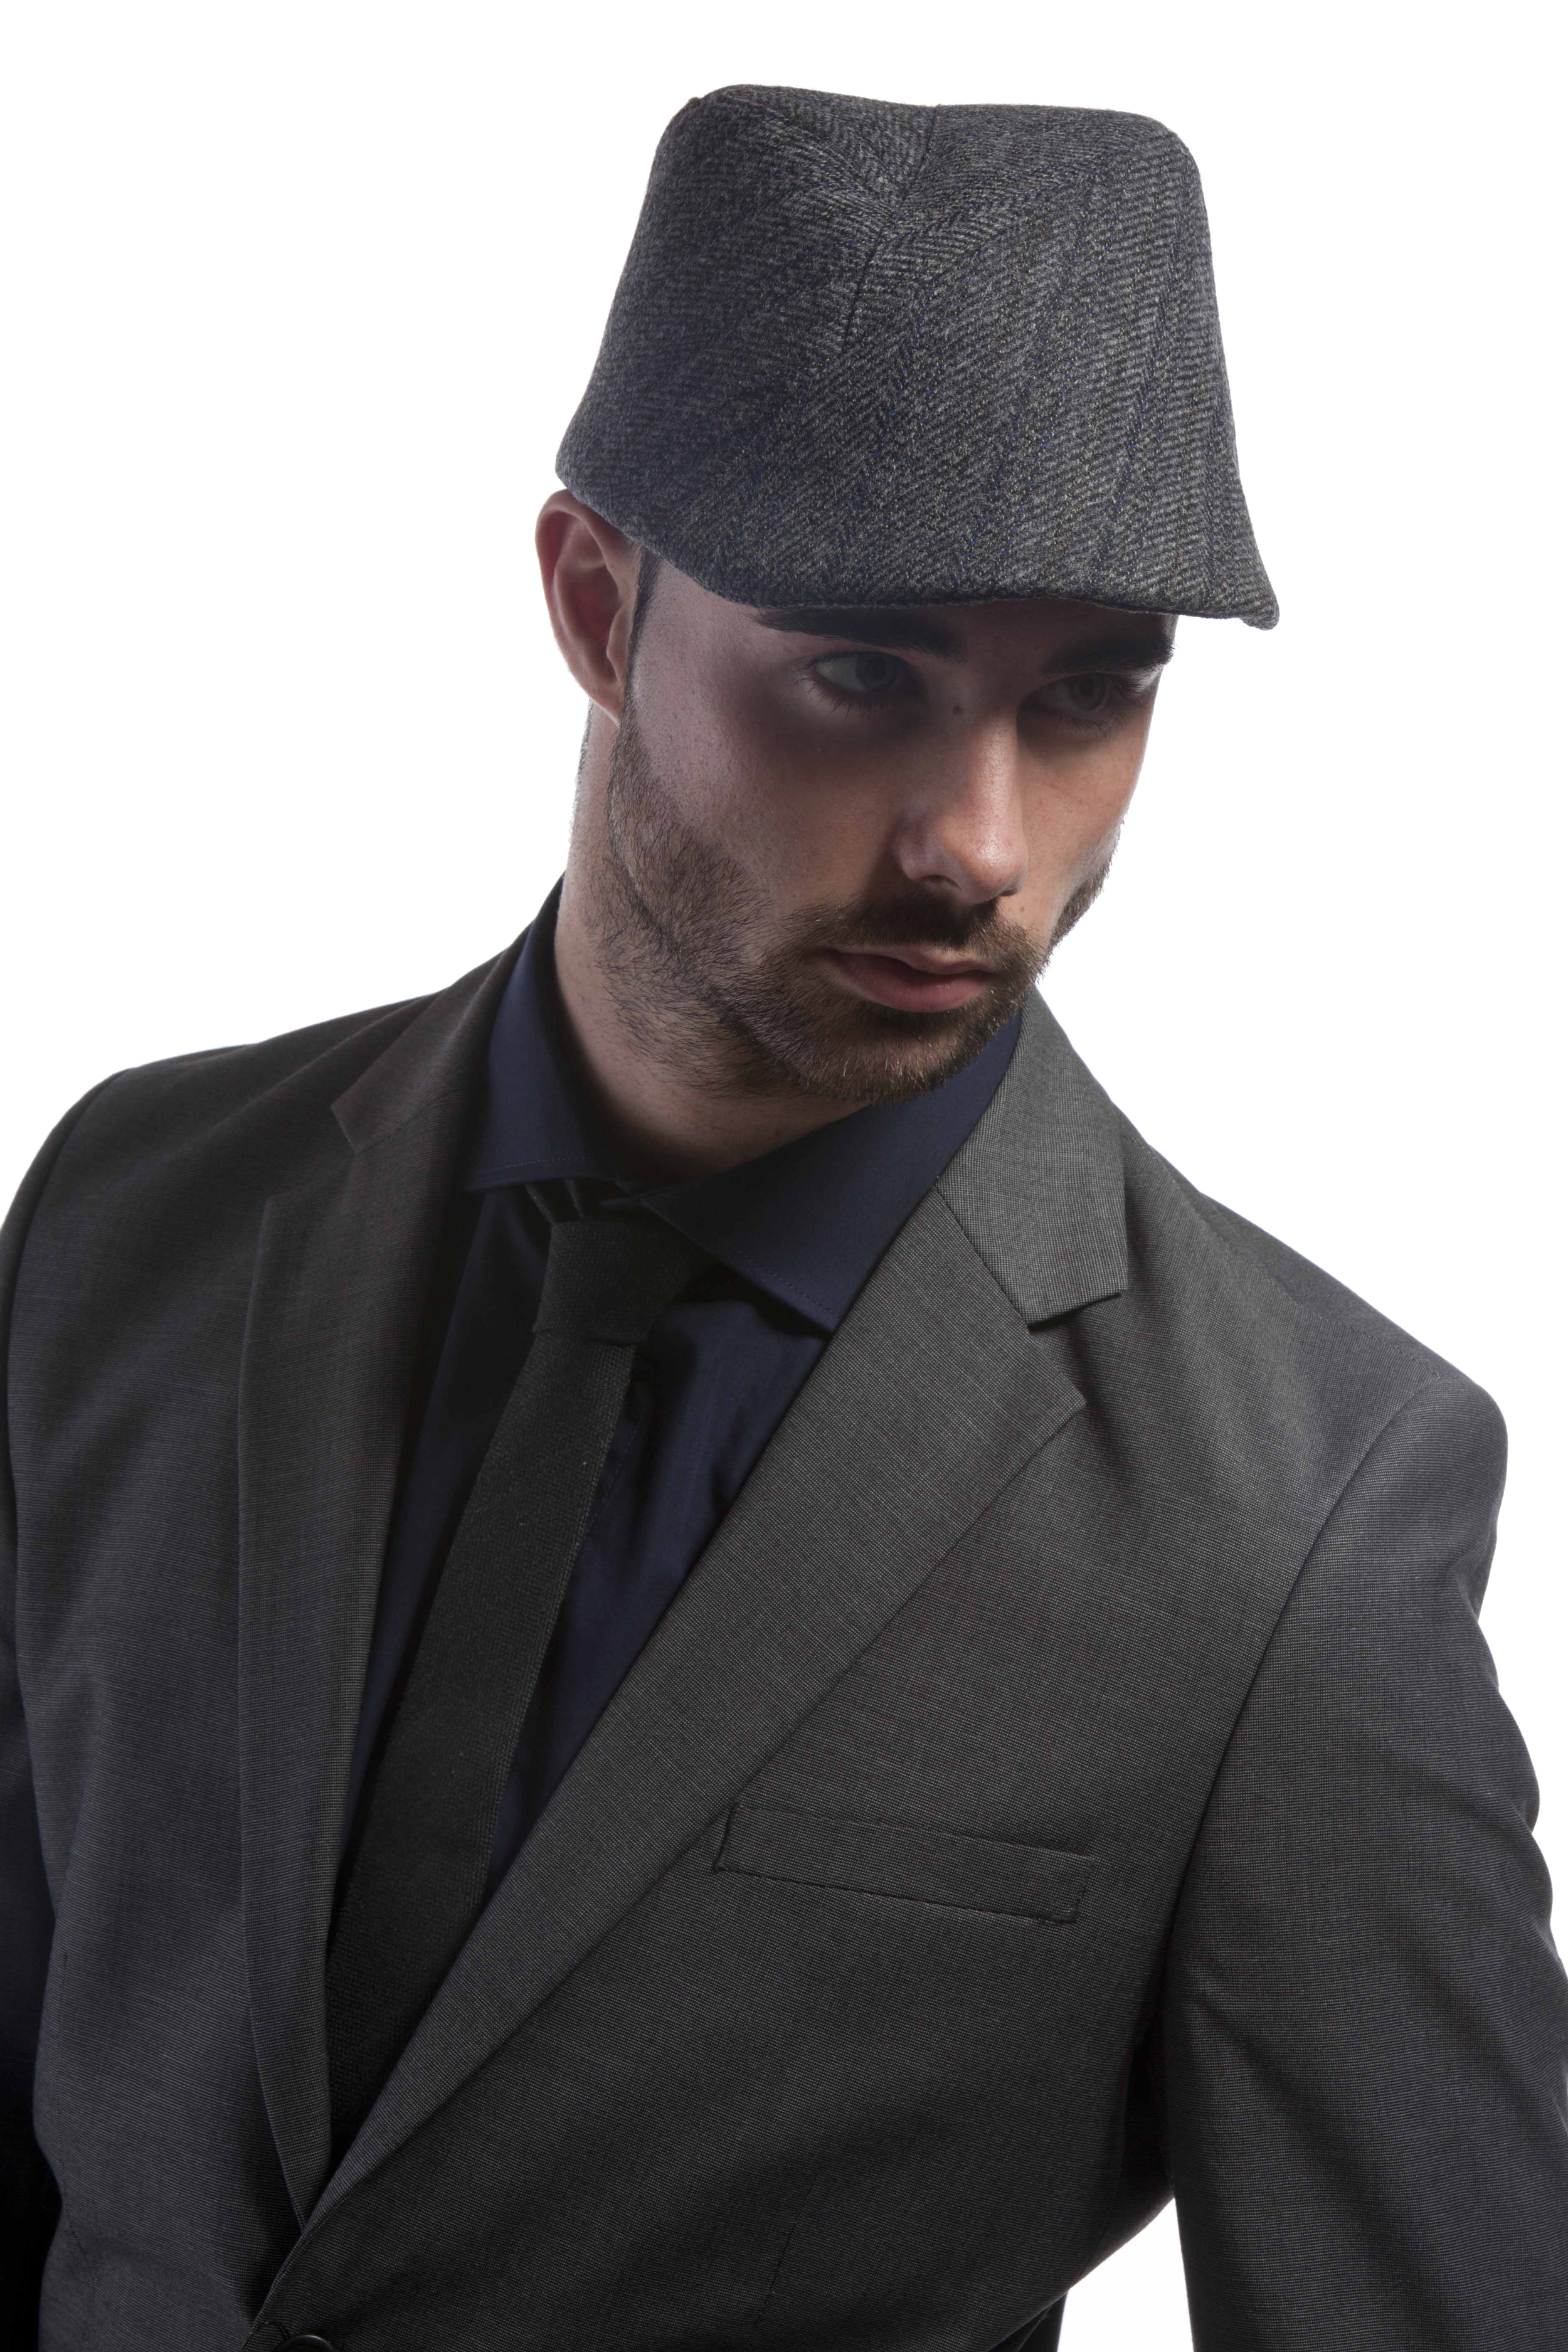 'Chicago' flat cap